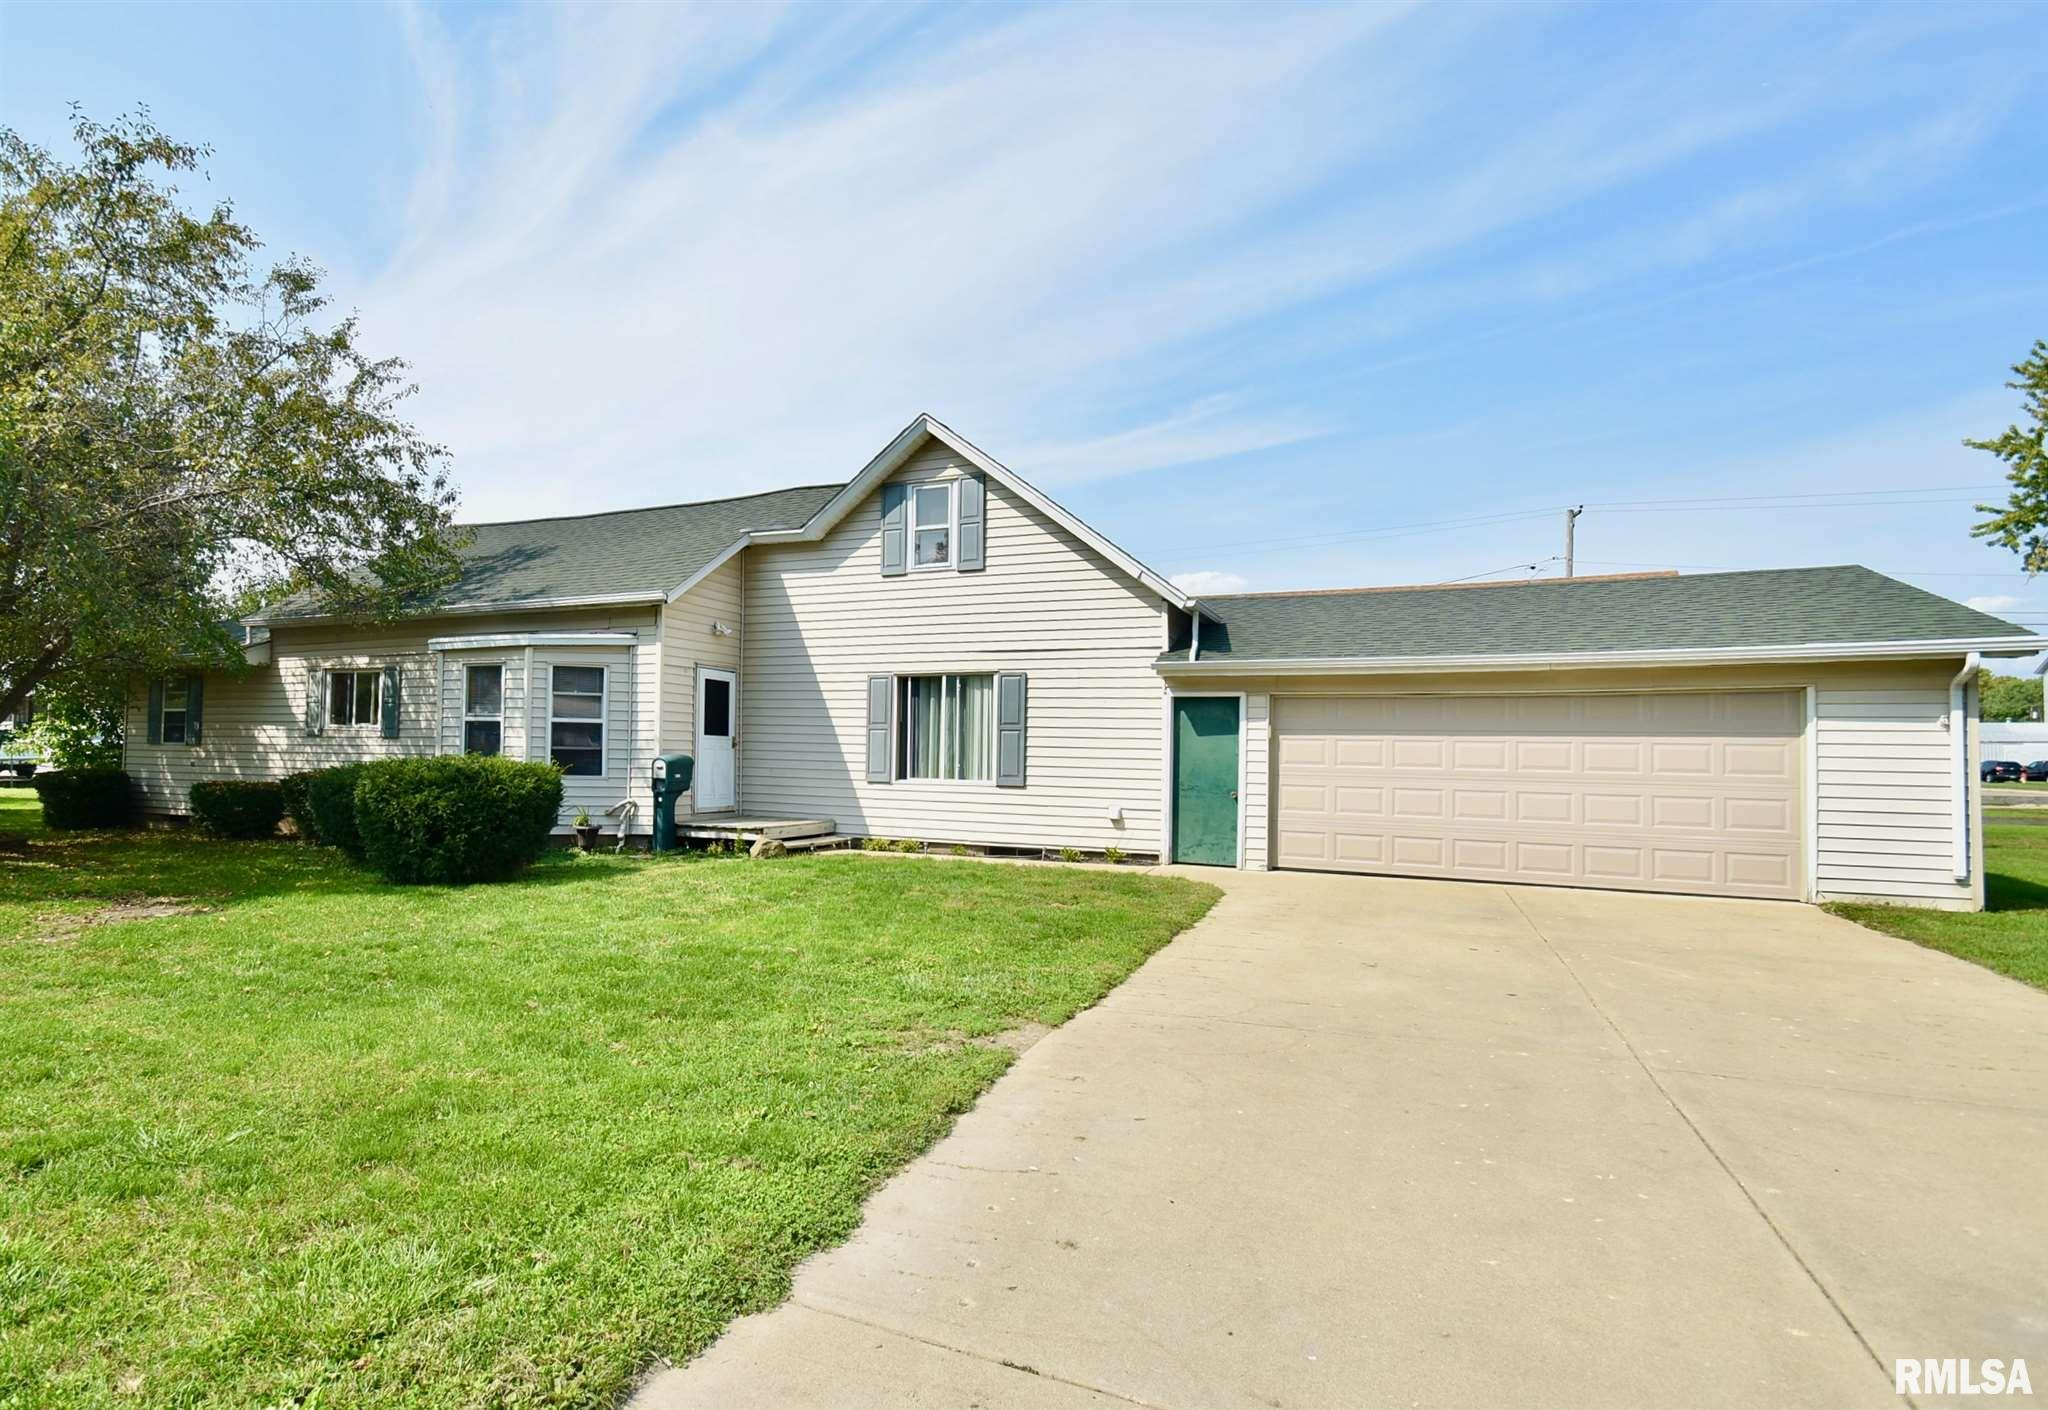 1300 THIRD Property Photo - Henry, IL real estate listing